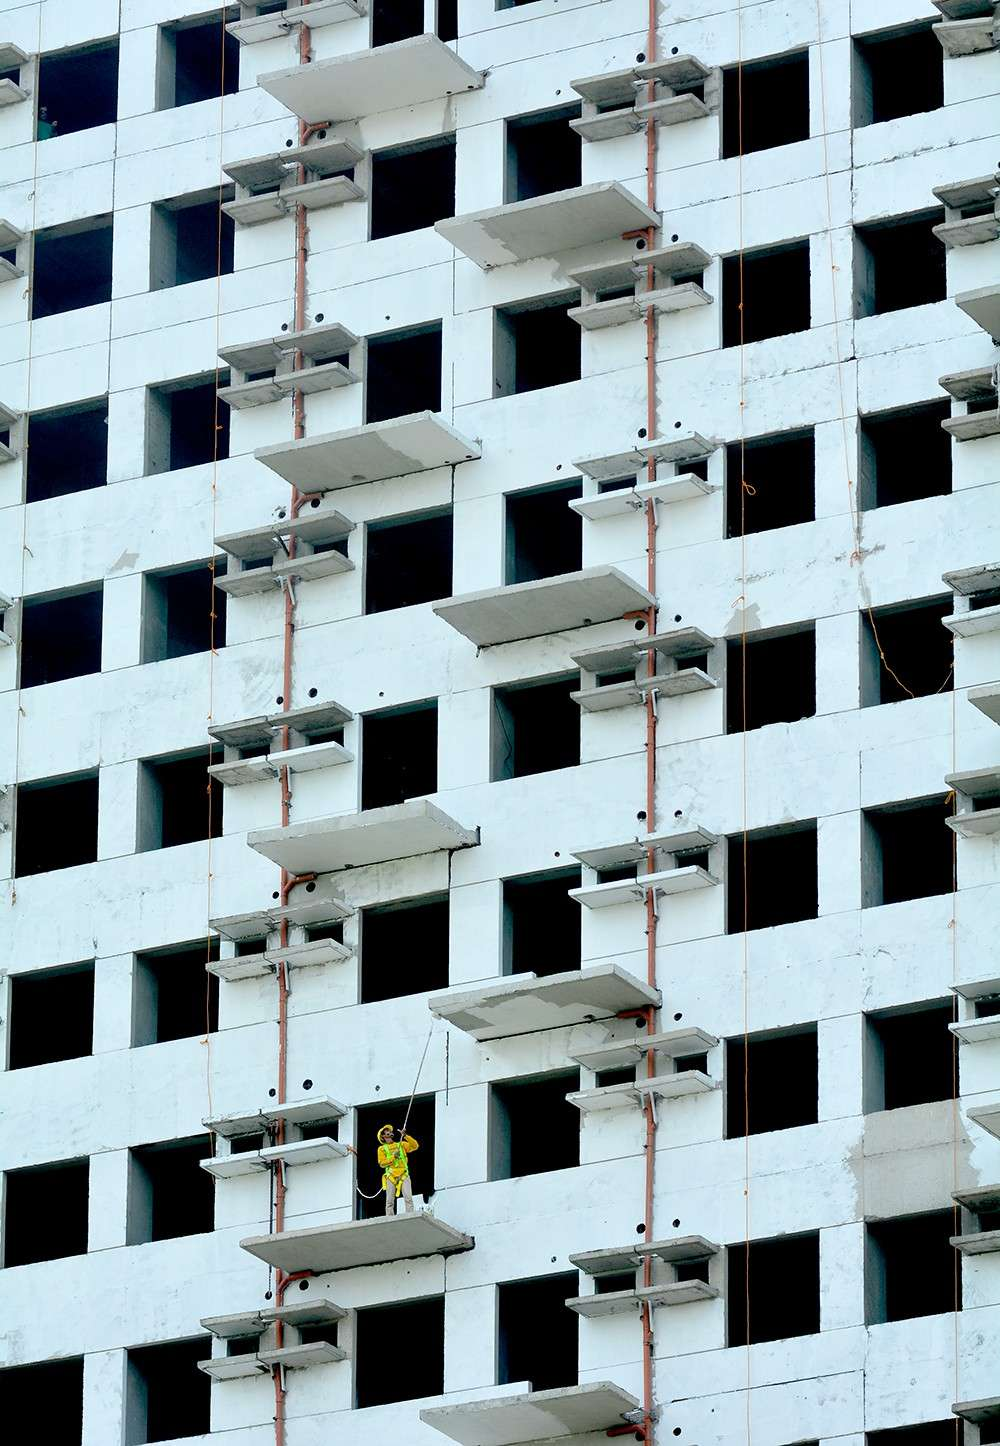 TALL ORDER. Demand for housing has not waned, as developers continue to build residential units. Mass housing topped the list of projects registered with the Board of Investments in 2018. (SunStar file)